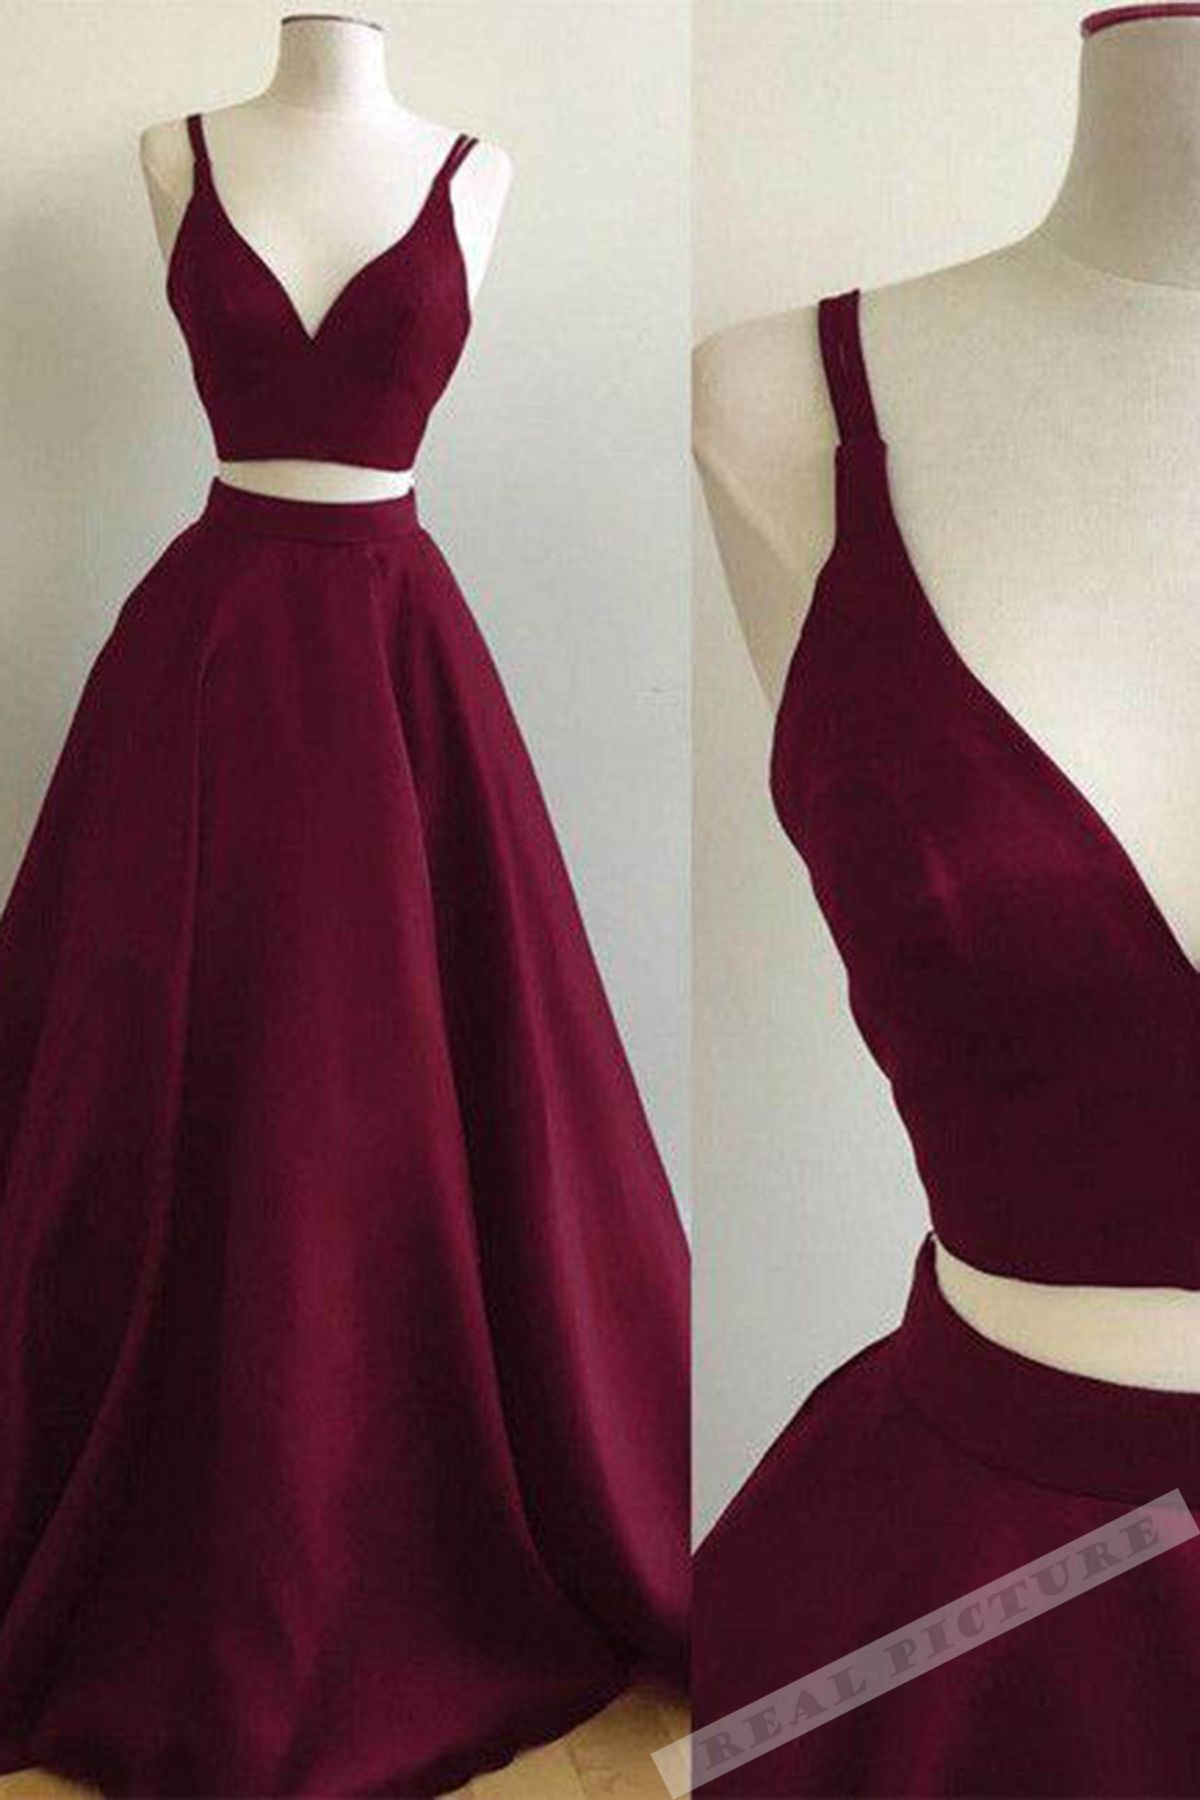 Pin by britney peters on fashion pinterest prom bridesmaid dress